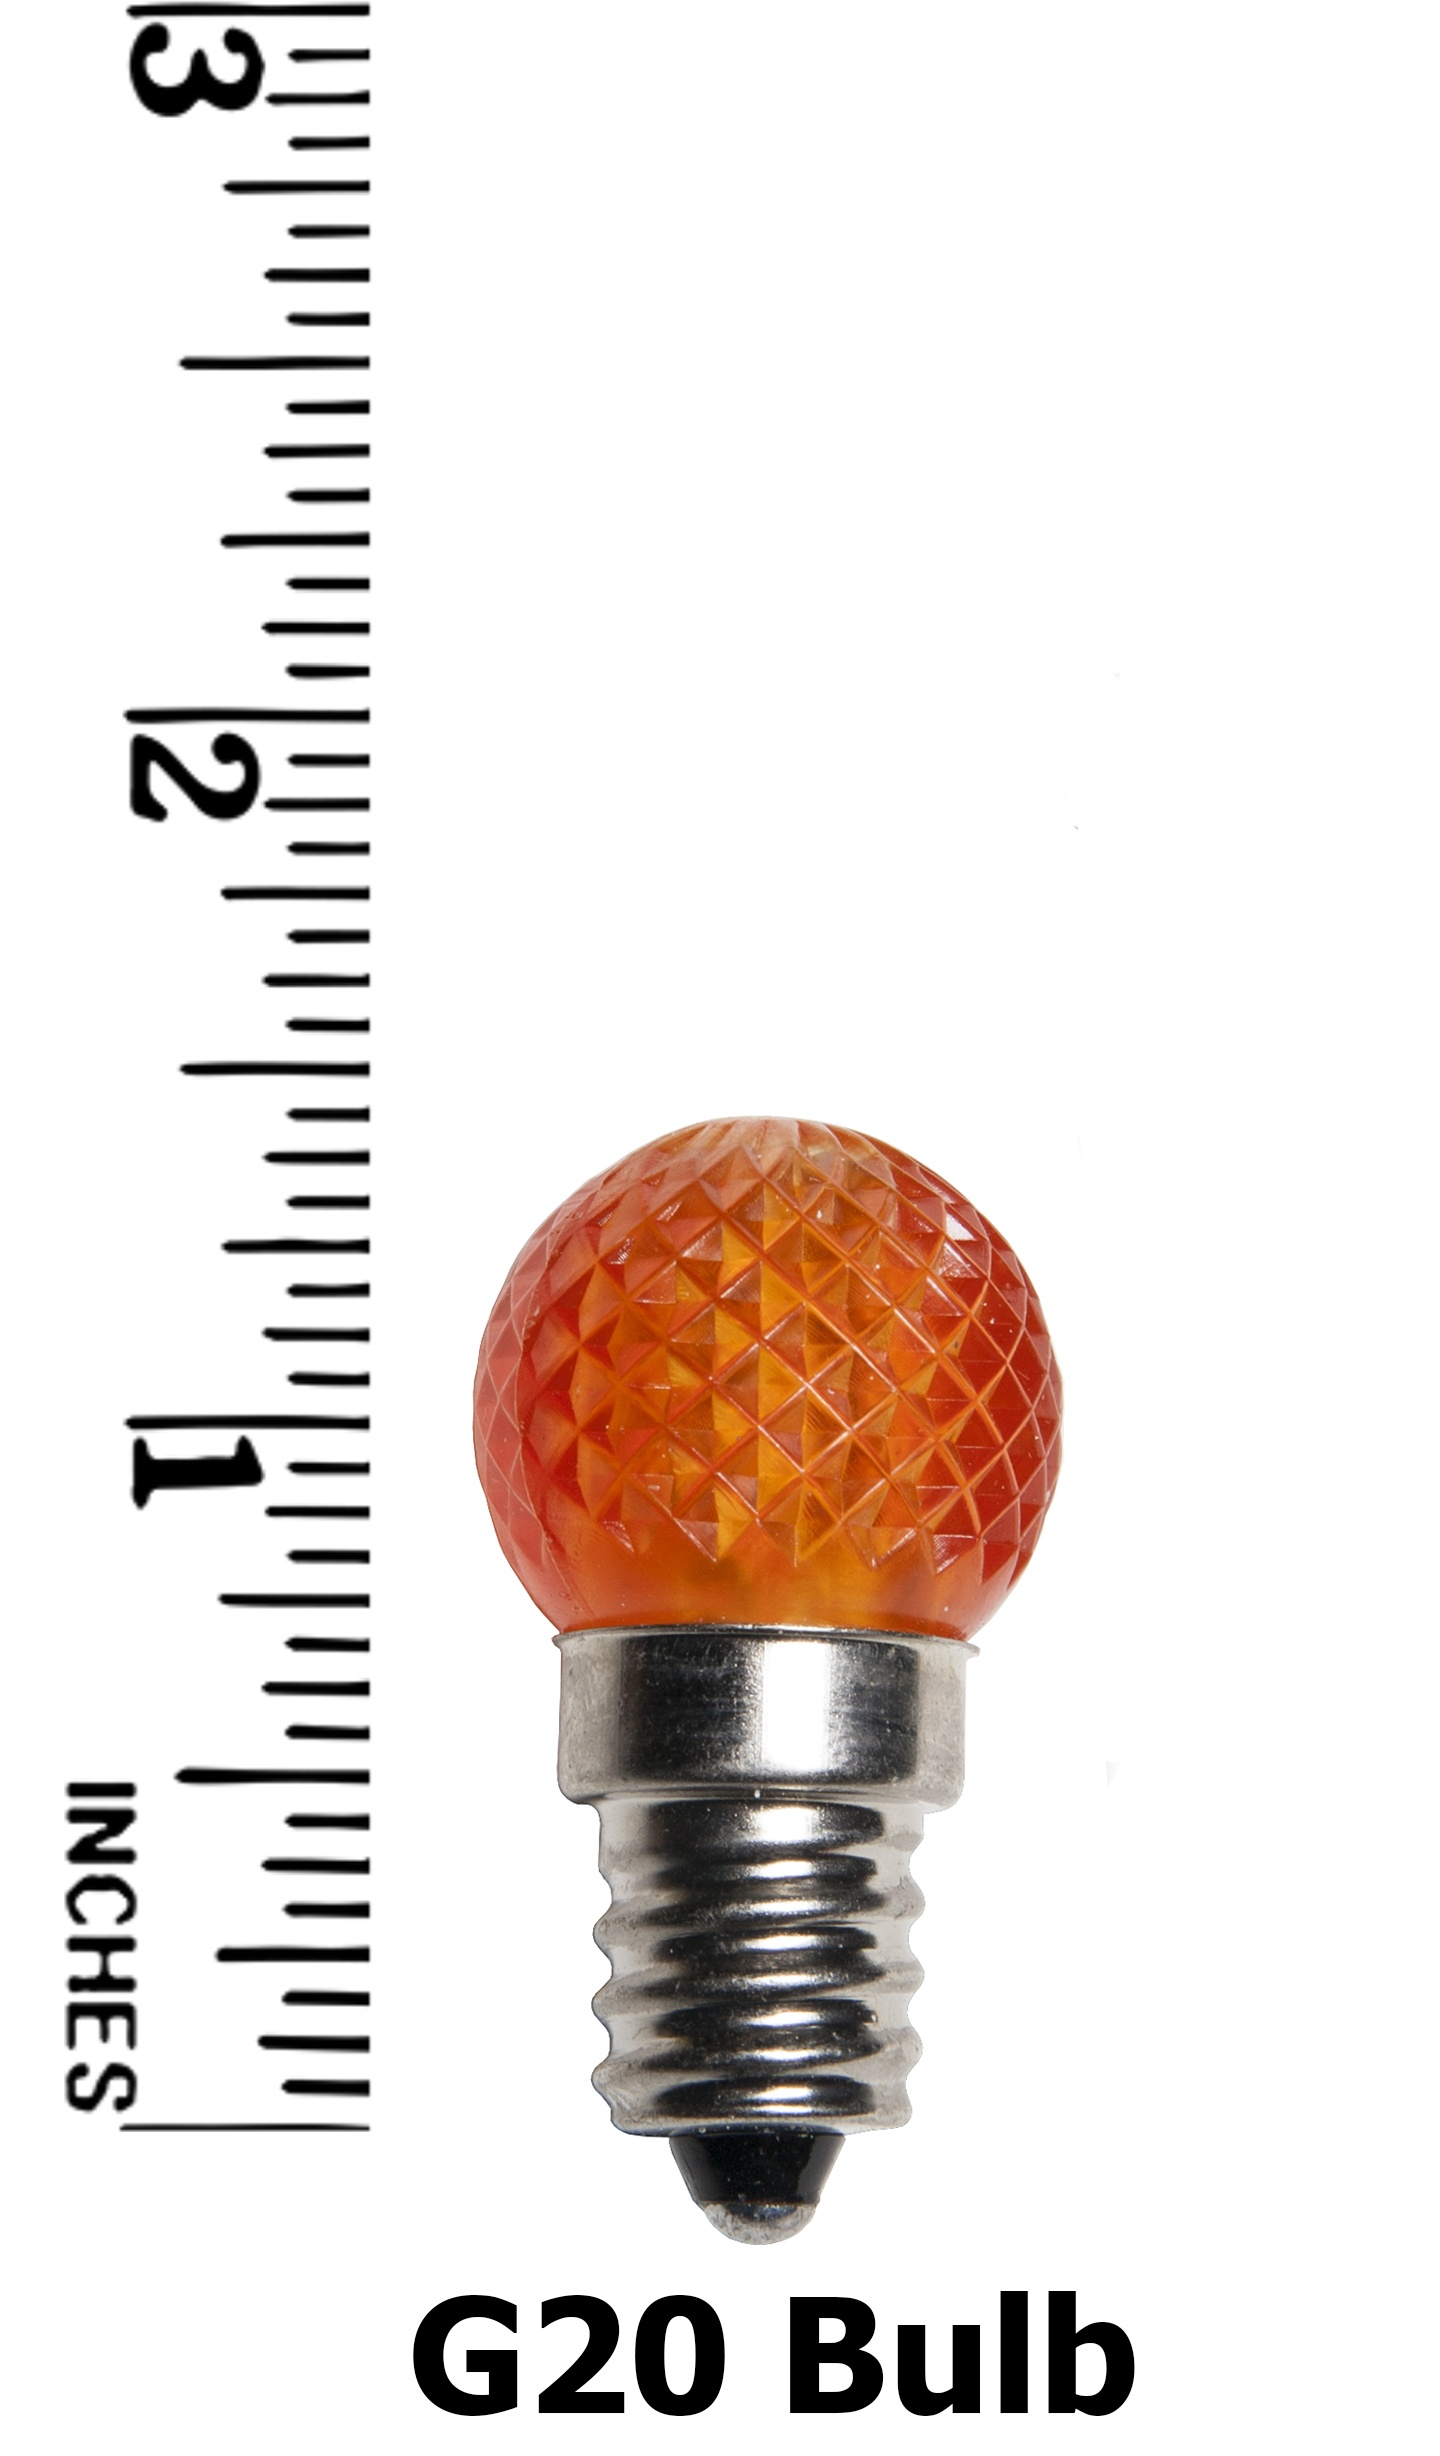 G20 Amber Bulb Measurement